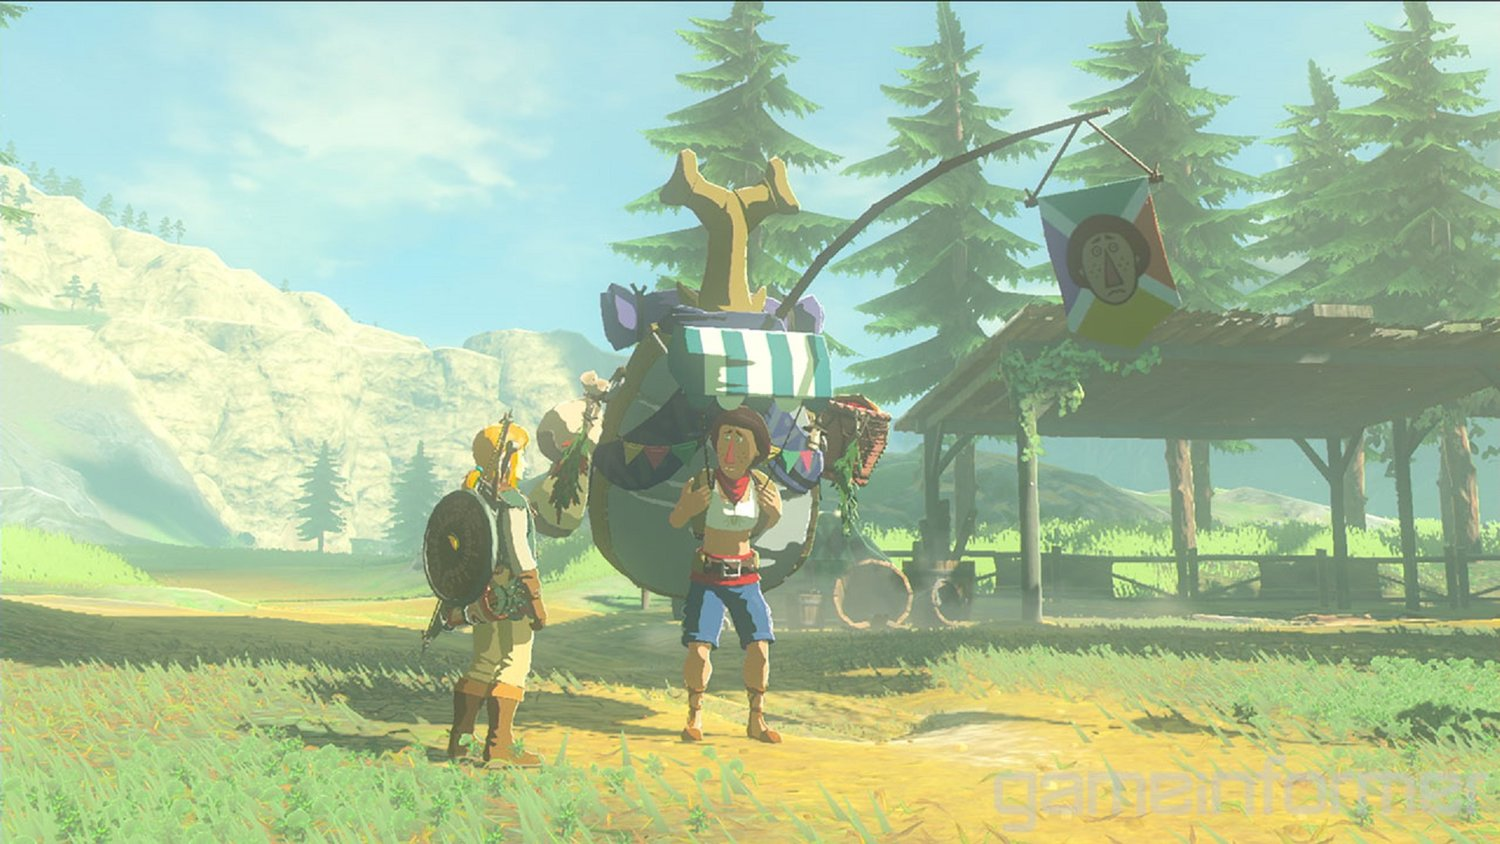 Appearance Of Old Character In ZELDA: BREATH OF THE WILD Potentially Hints At Timeline